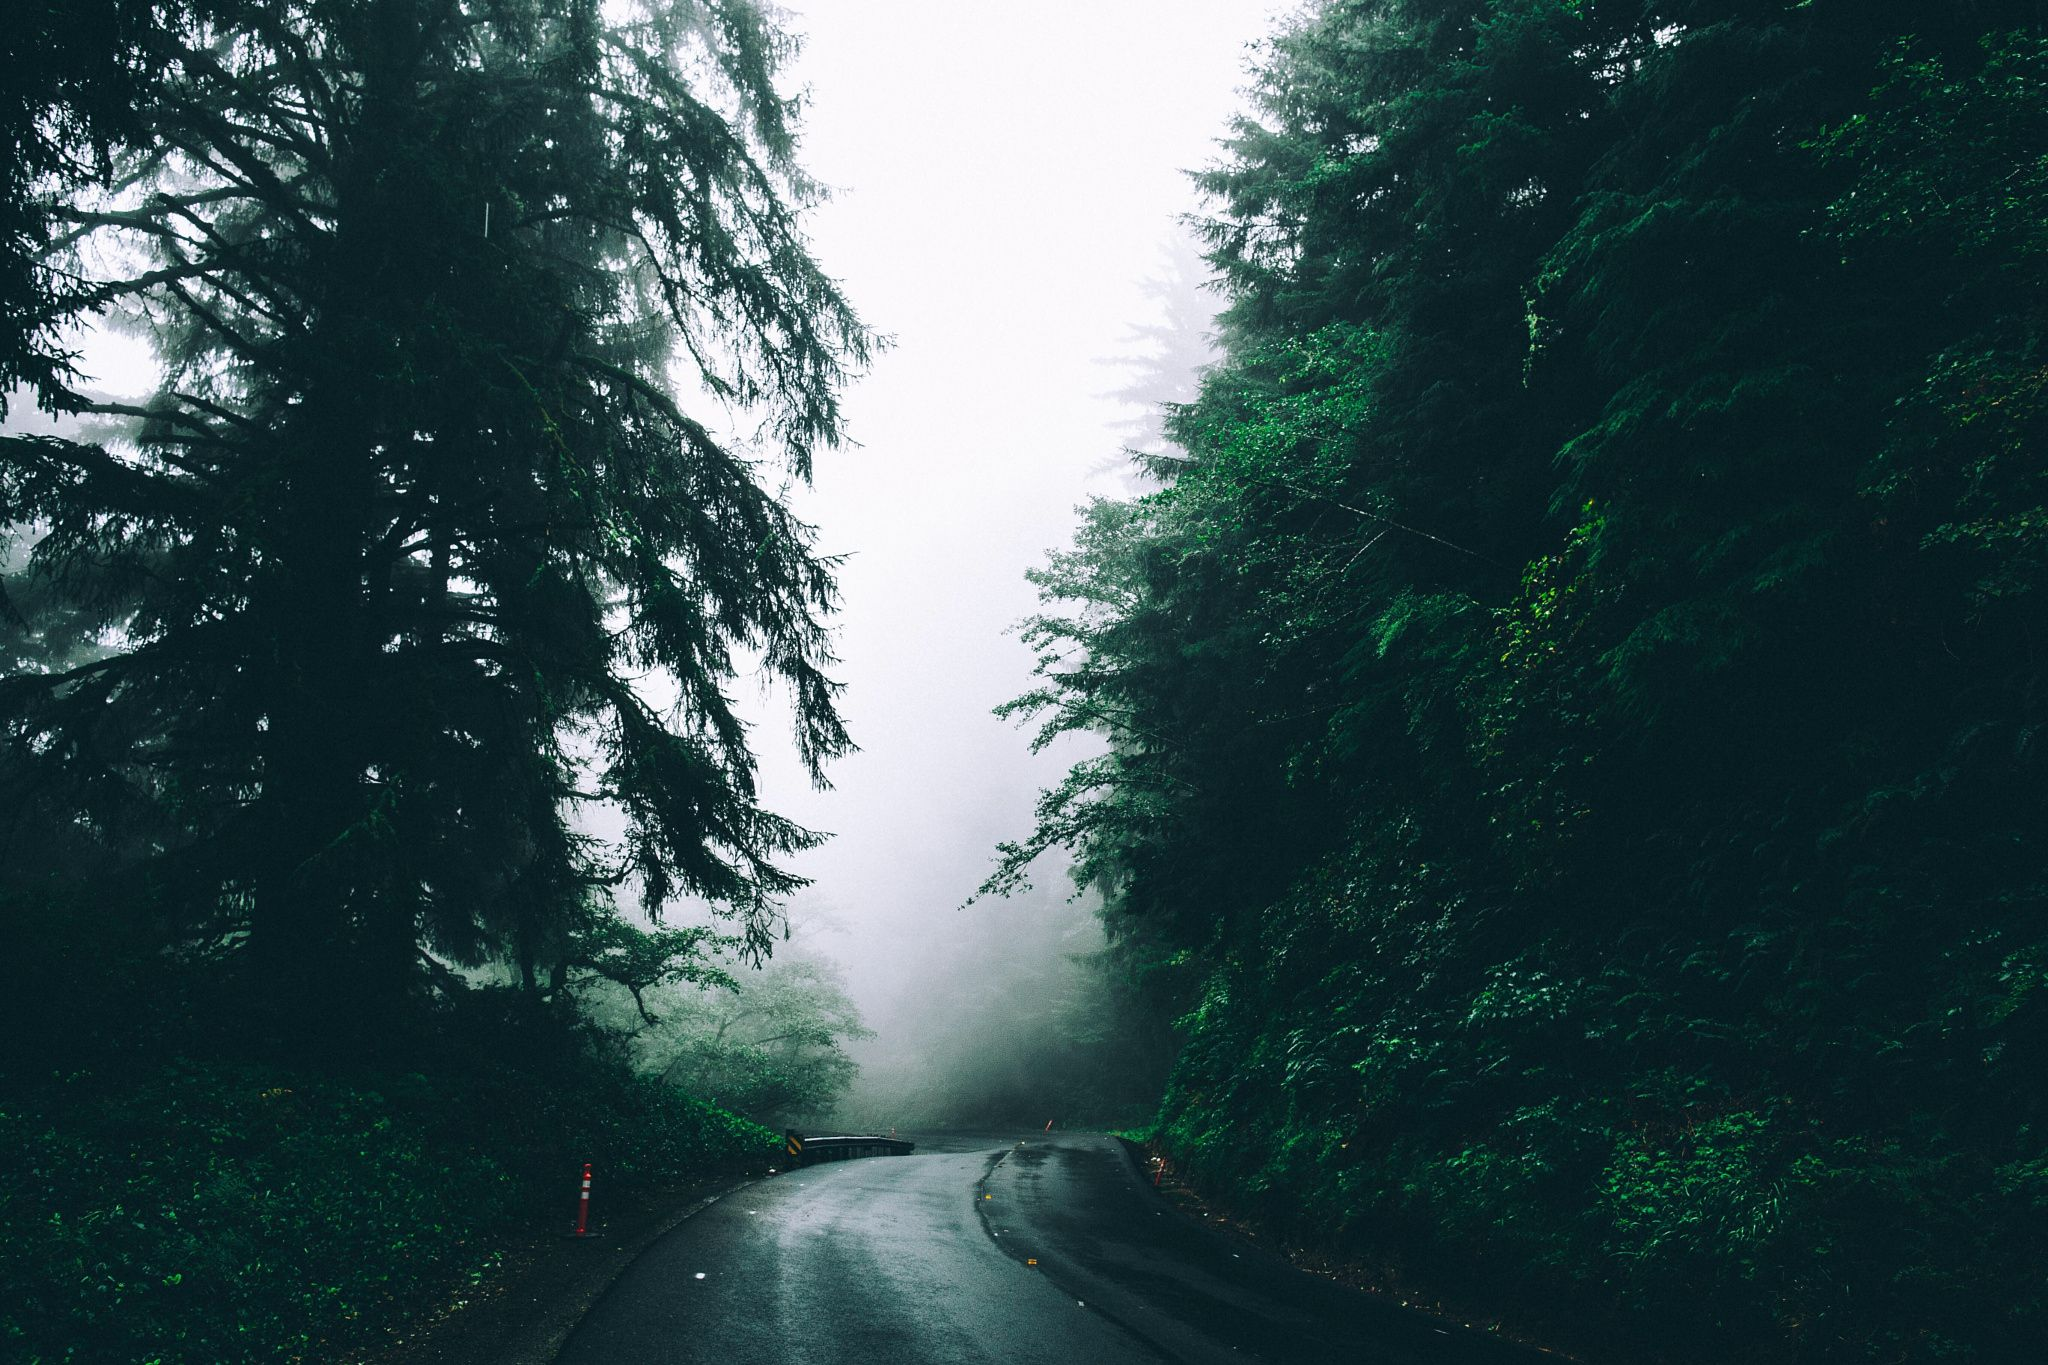 Foggy mornings by Ryan Millier on 500px